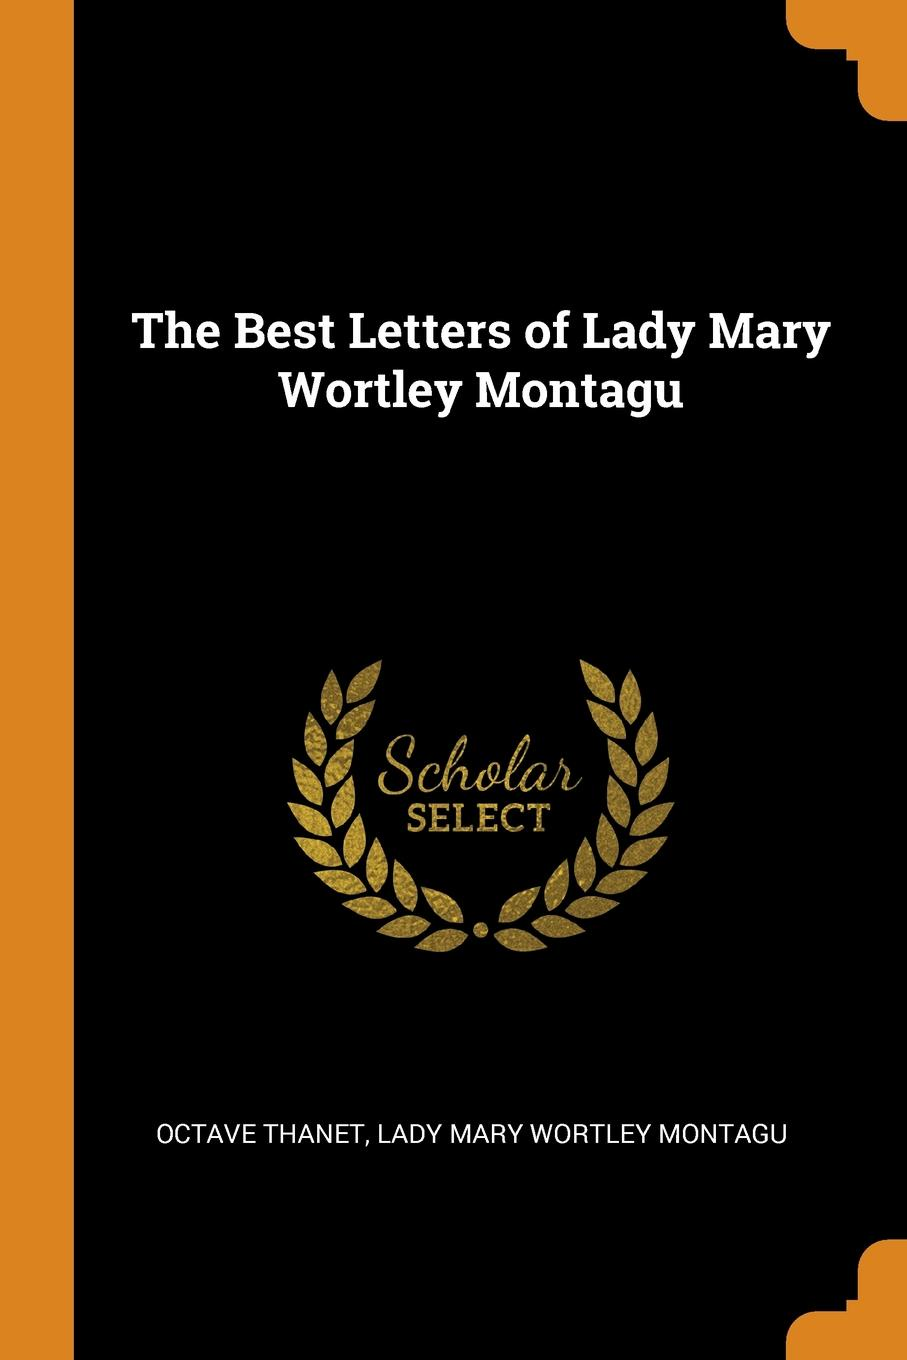 Octave Thanet, Lady Mary Wortley Montagu The Best Letters of Lady Mary Wortley Montagu